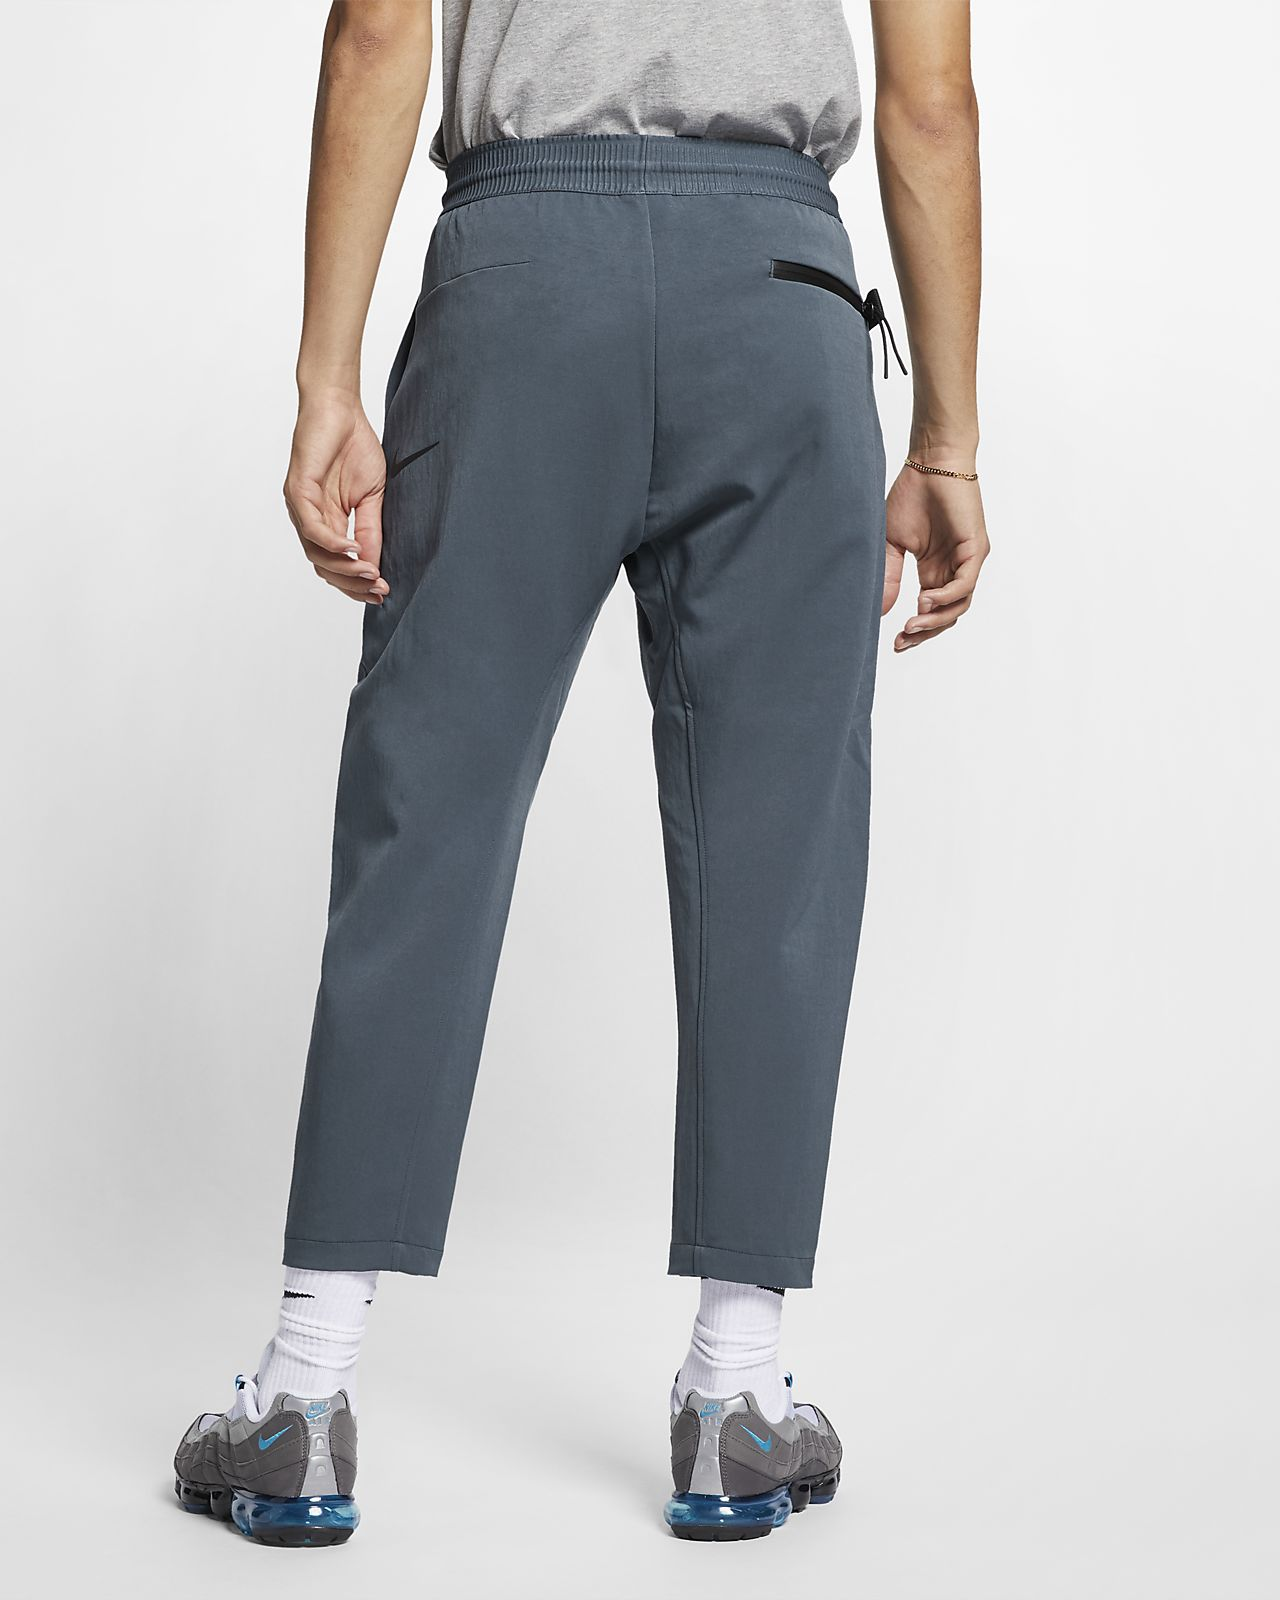 Court Tech Nike Tissé Sportswear Pack Pantalon 3TlF1uK5Jc